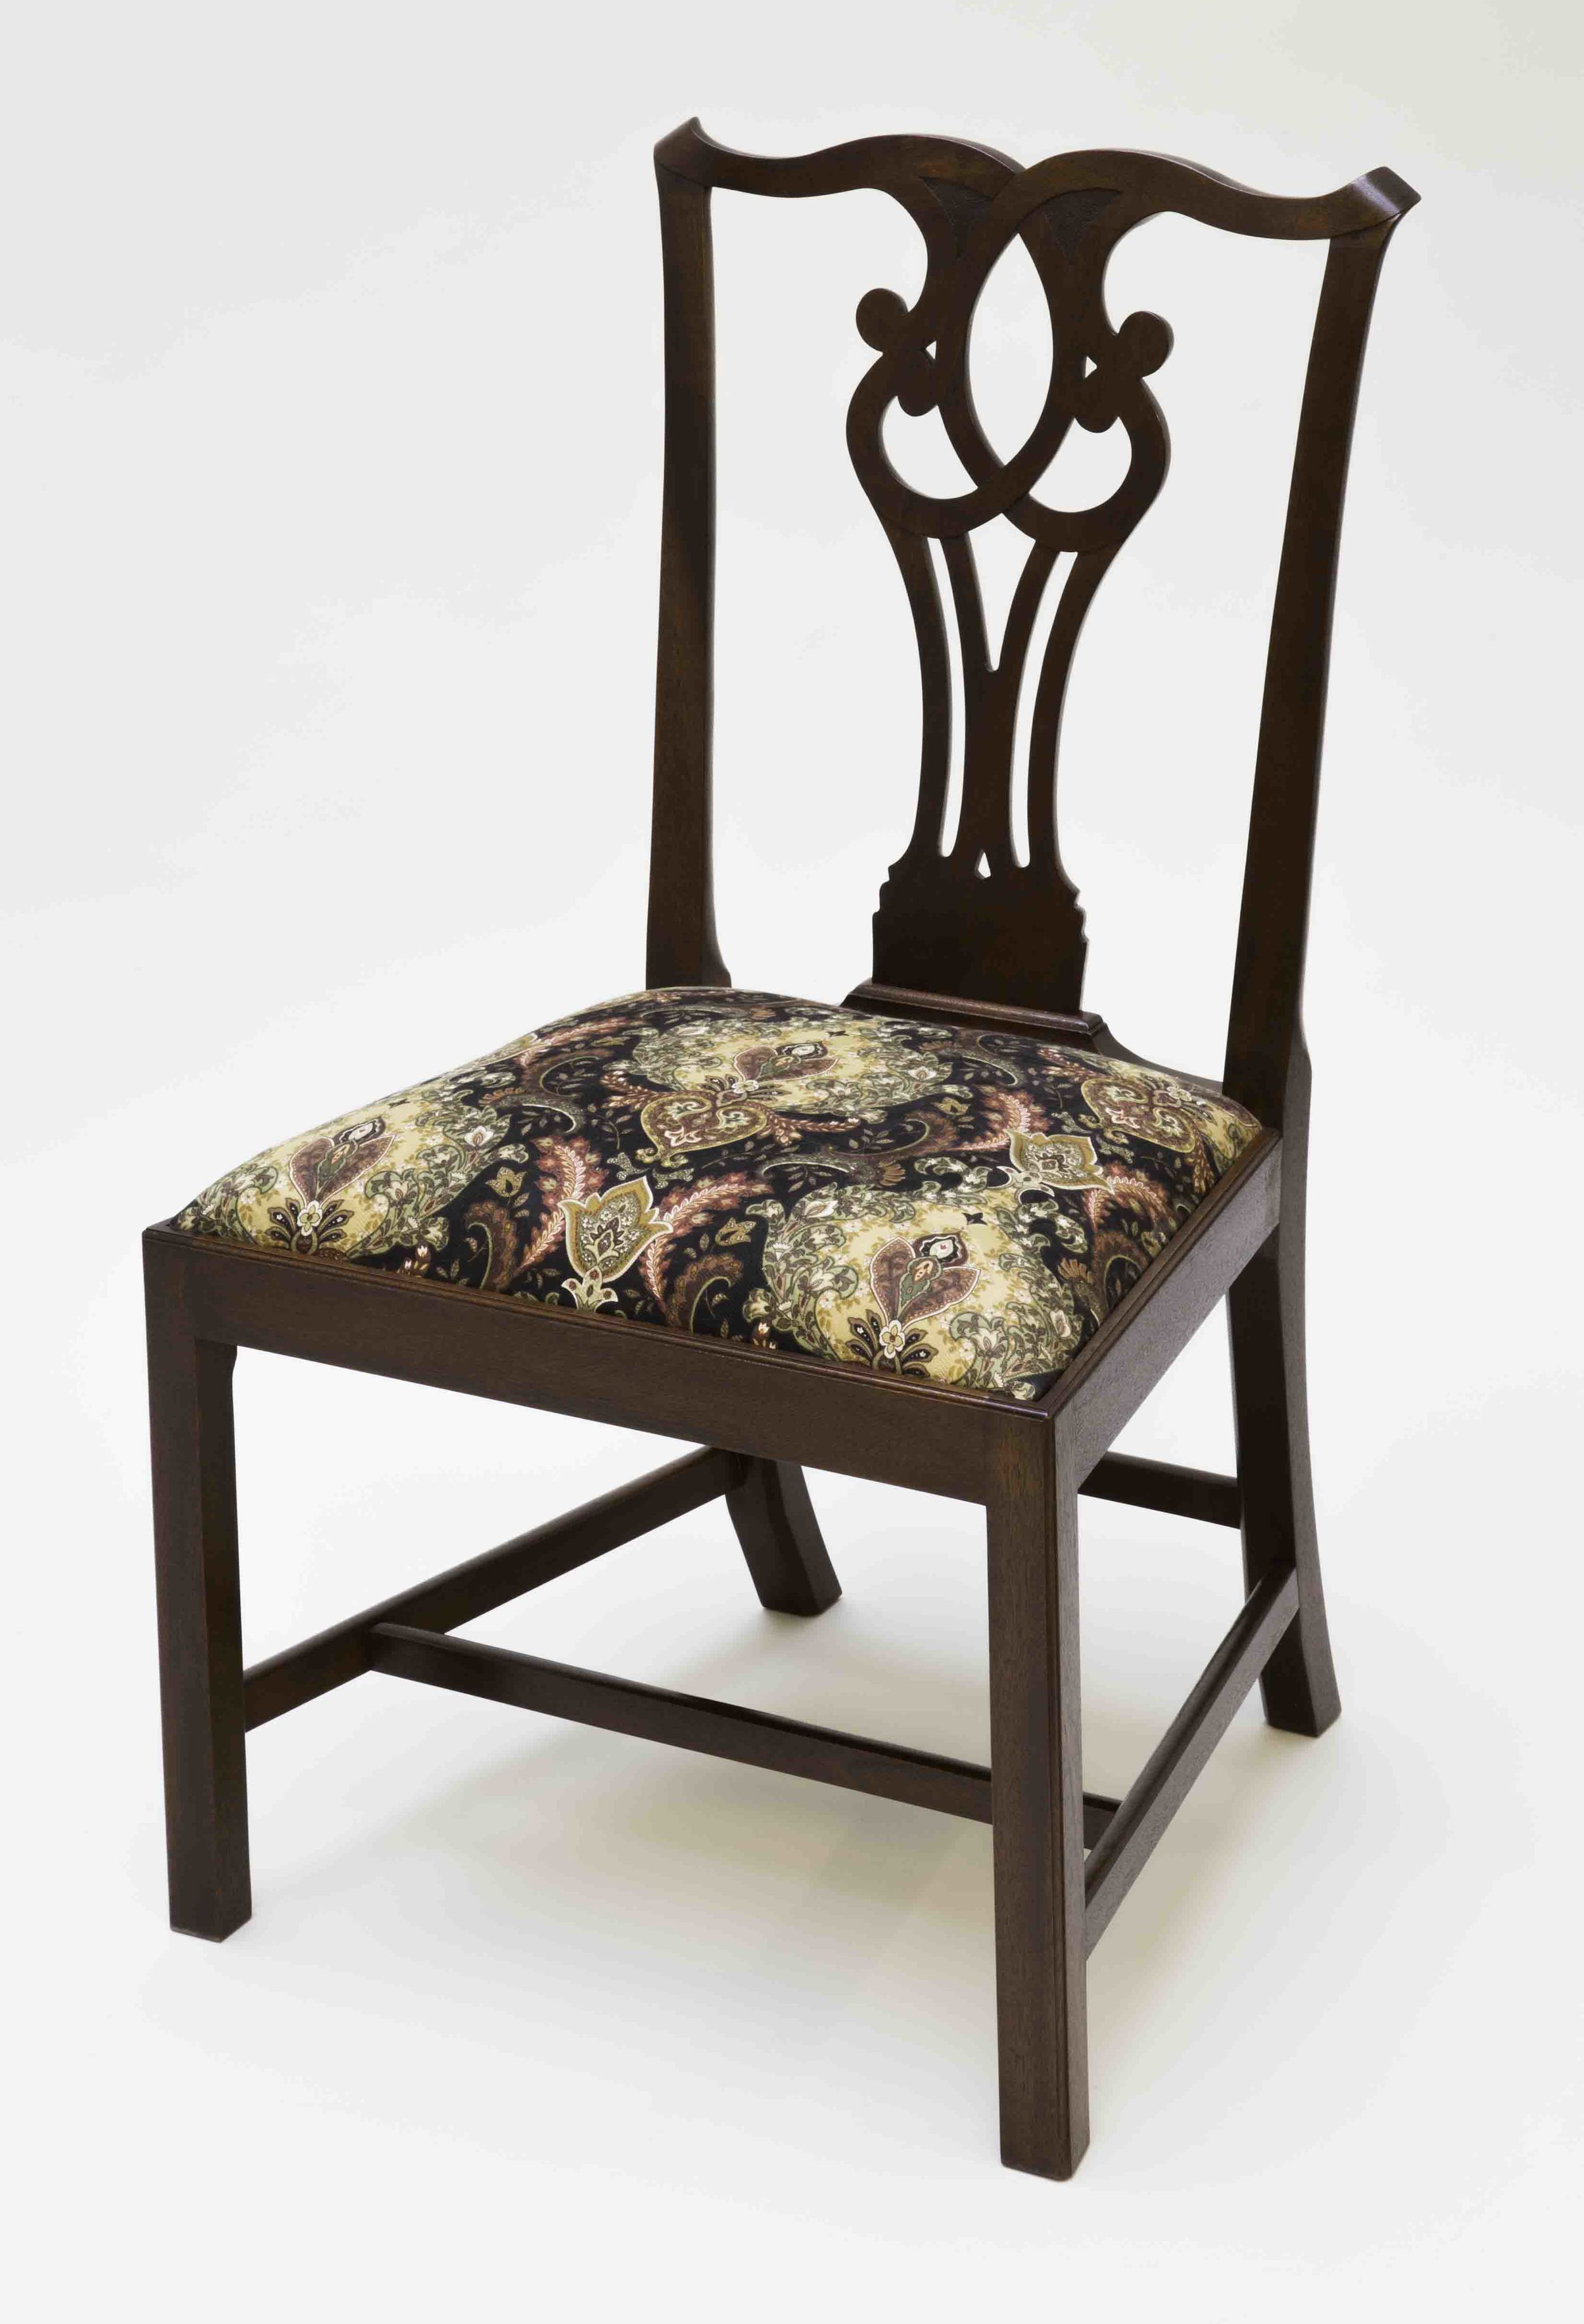 """This is a Chippendale side chair. The chair frame is mahogany, slip seat frame is ash, glue blocks are pine. Muslin, horse hair, two inch webbing,black cloth and cotton stuffing are used for the slip seat cushion. A formula of orange dye, brown walnut dye, brown walnut pigmented stain were used to achieve the rich color. A shellac was applied by hand (French polish). This chair is for sale for $1800.00.Dimension: 21 1/2"""" wide x 38"""" high x 17 1/2 deep. (Click on the picture to see how it was put together.)"""